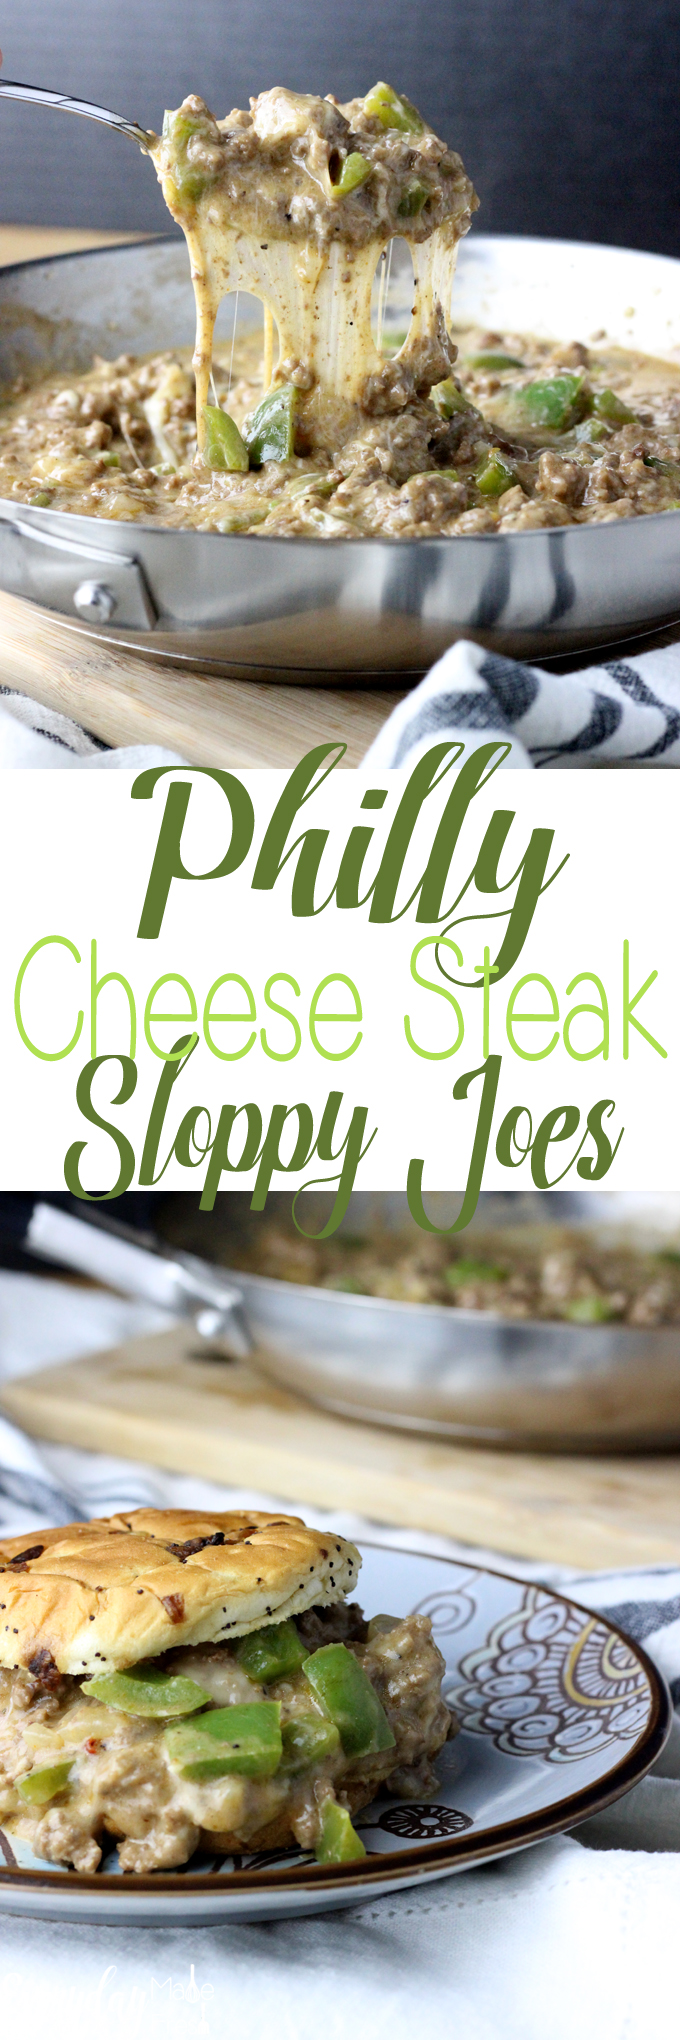 Philly Cheese Steak and Sloppy Joes come together in this one pan dish to create your next family favorite, Philly Cheese Steak Sloppy Joes! | EverydayMadeFresh.com